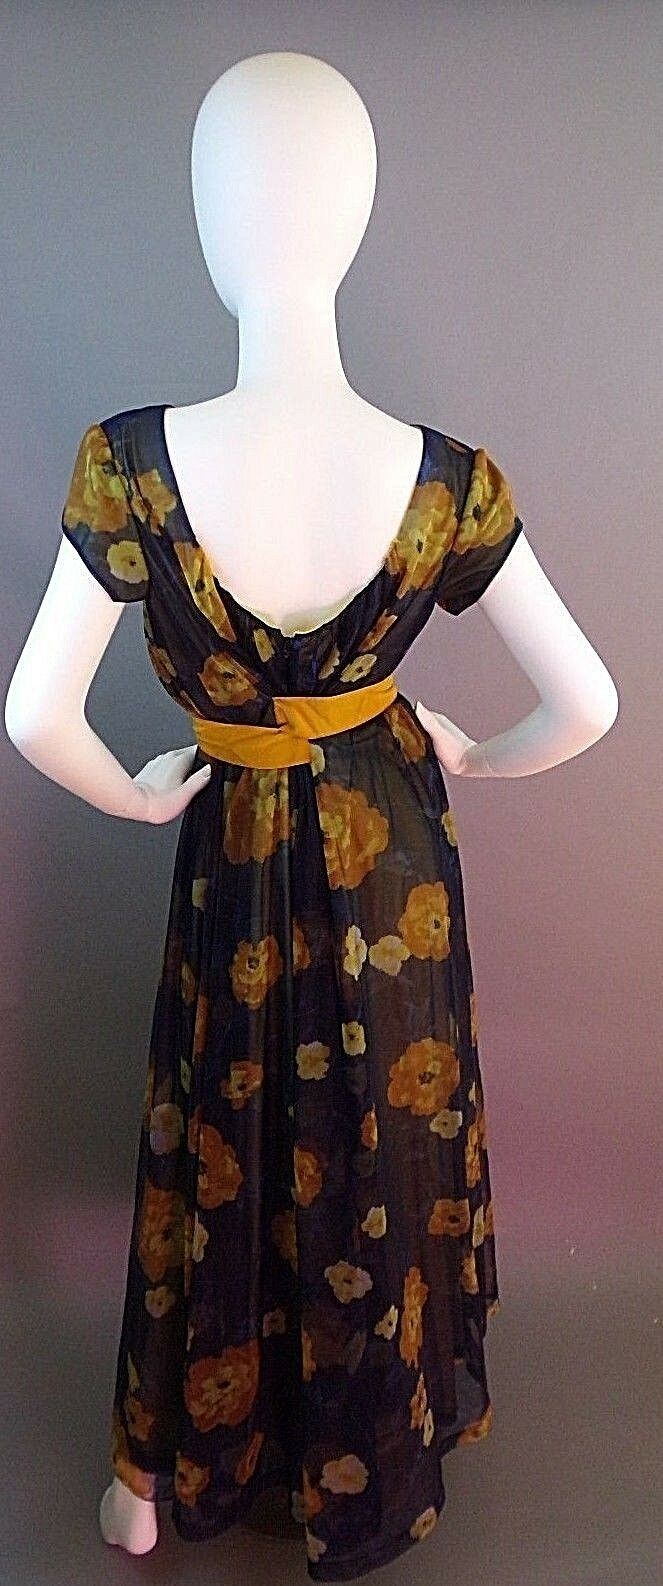 VINTAGE LUCIE ANN BEVERLY HILLS 1950s NIGHTGOWN - image 11